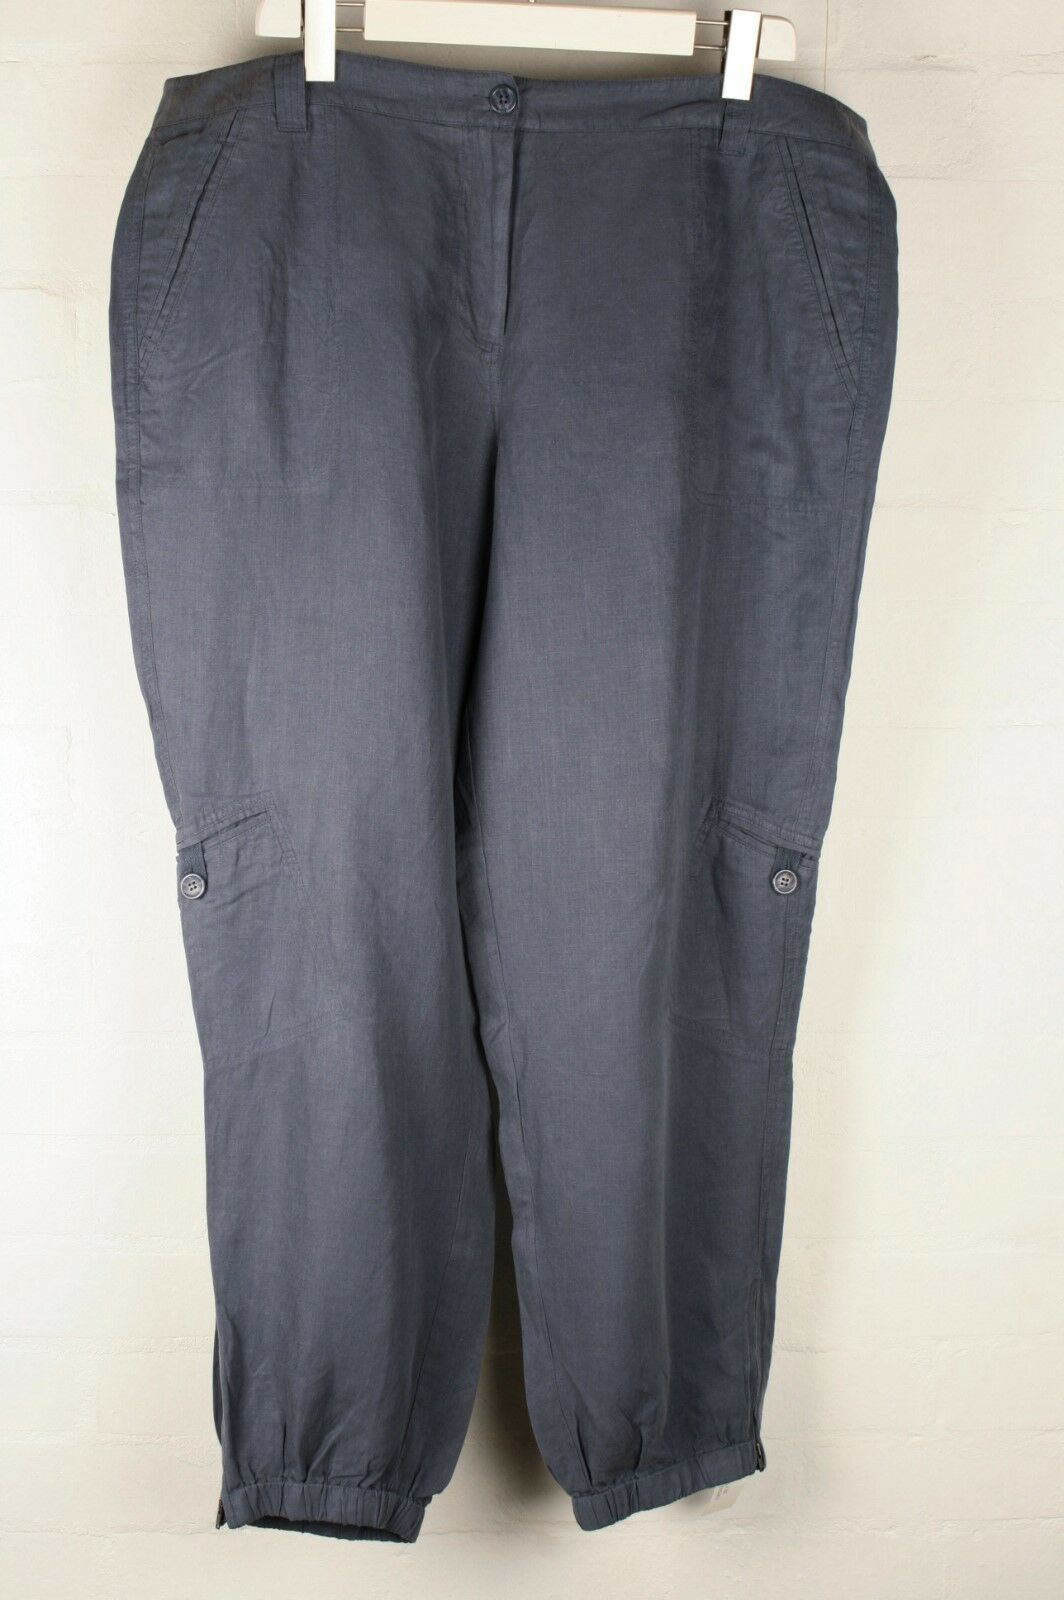 Poetry BNWT bluee Linen Silk Cuffed Cargo Trousers sz 22